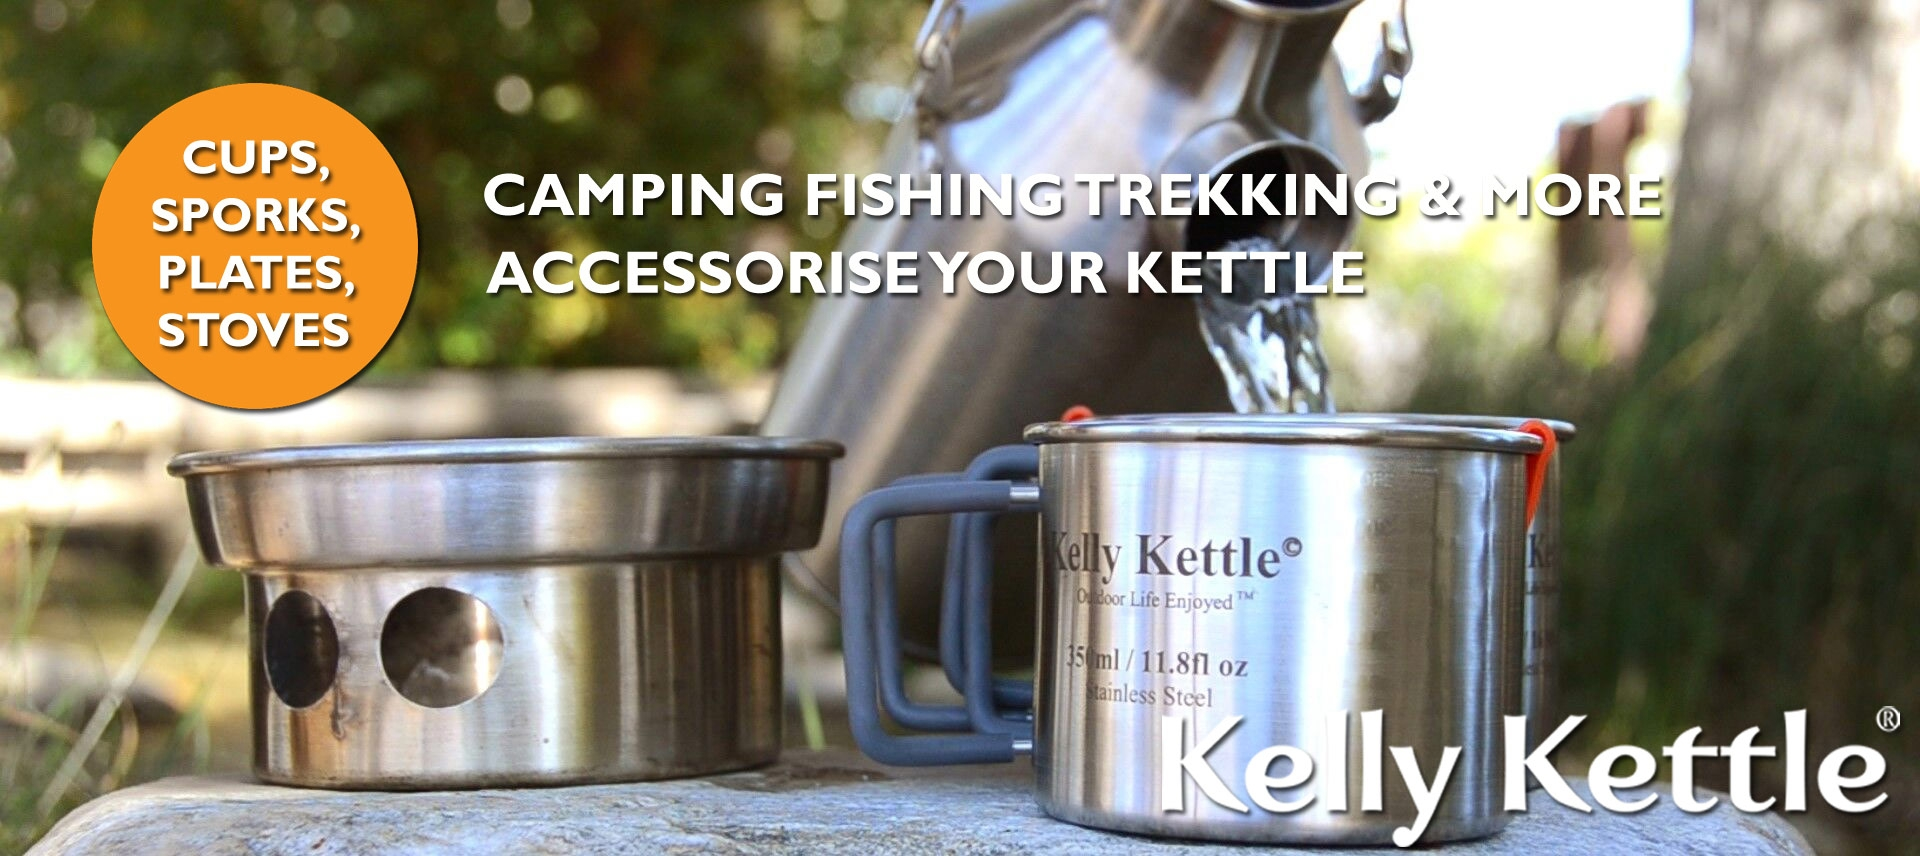 KETTLE - ACCESSORIES